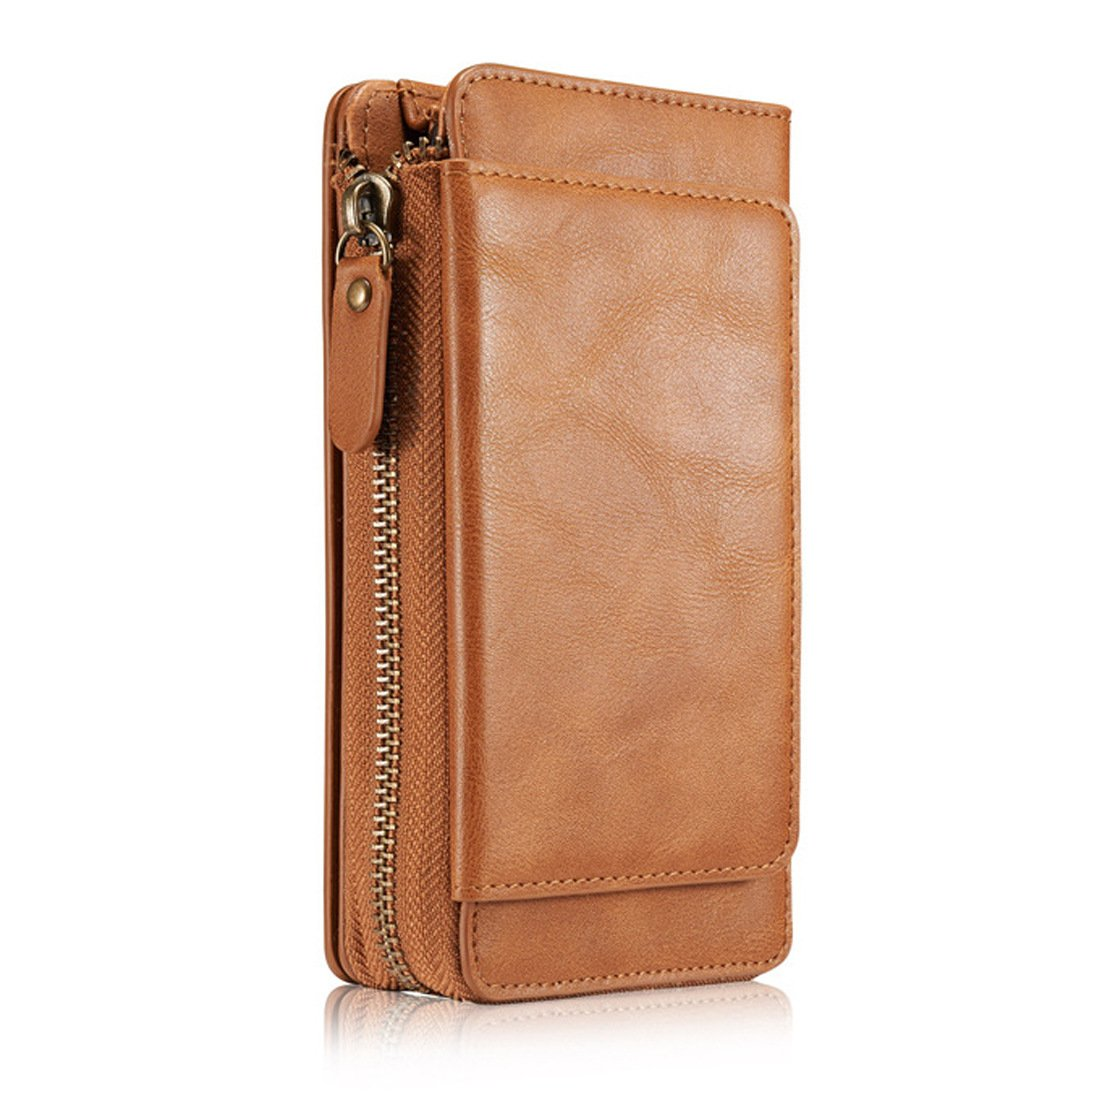 iPhone X Wallet Case,iPhone X Case,Ayans PU Leather Zipper Wallet Case with Card Holder and Strap, Detachable Back Cover Purse Clutch for iPhone X/iPhone 10 (5.8 inch)